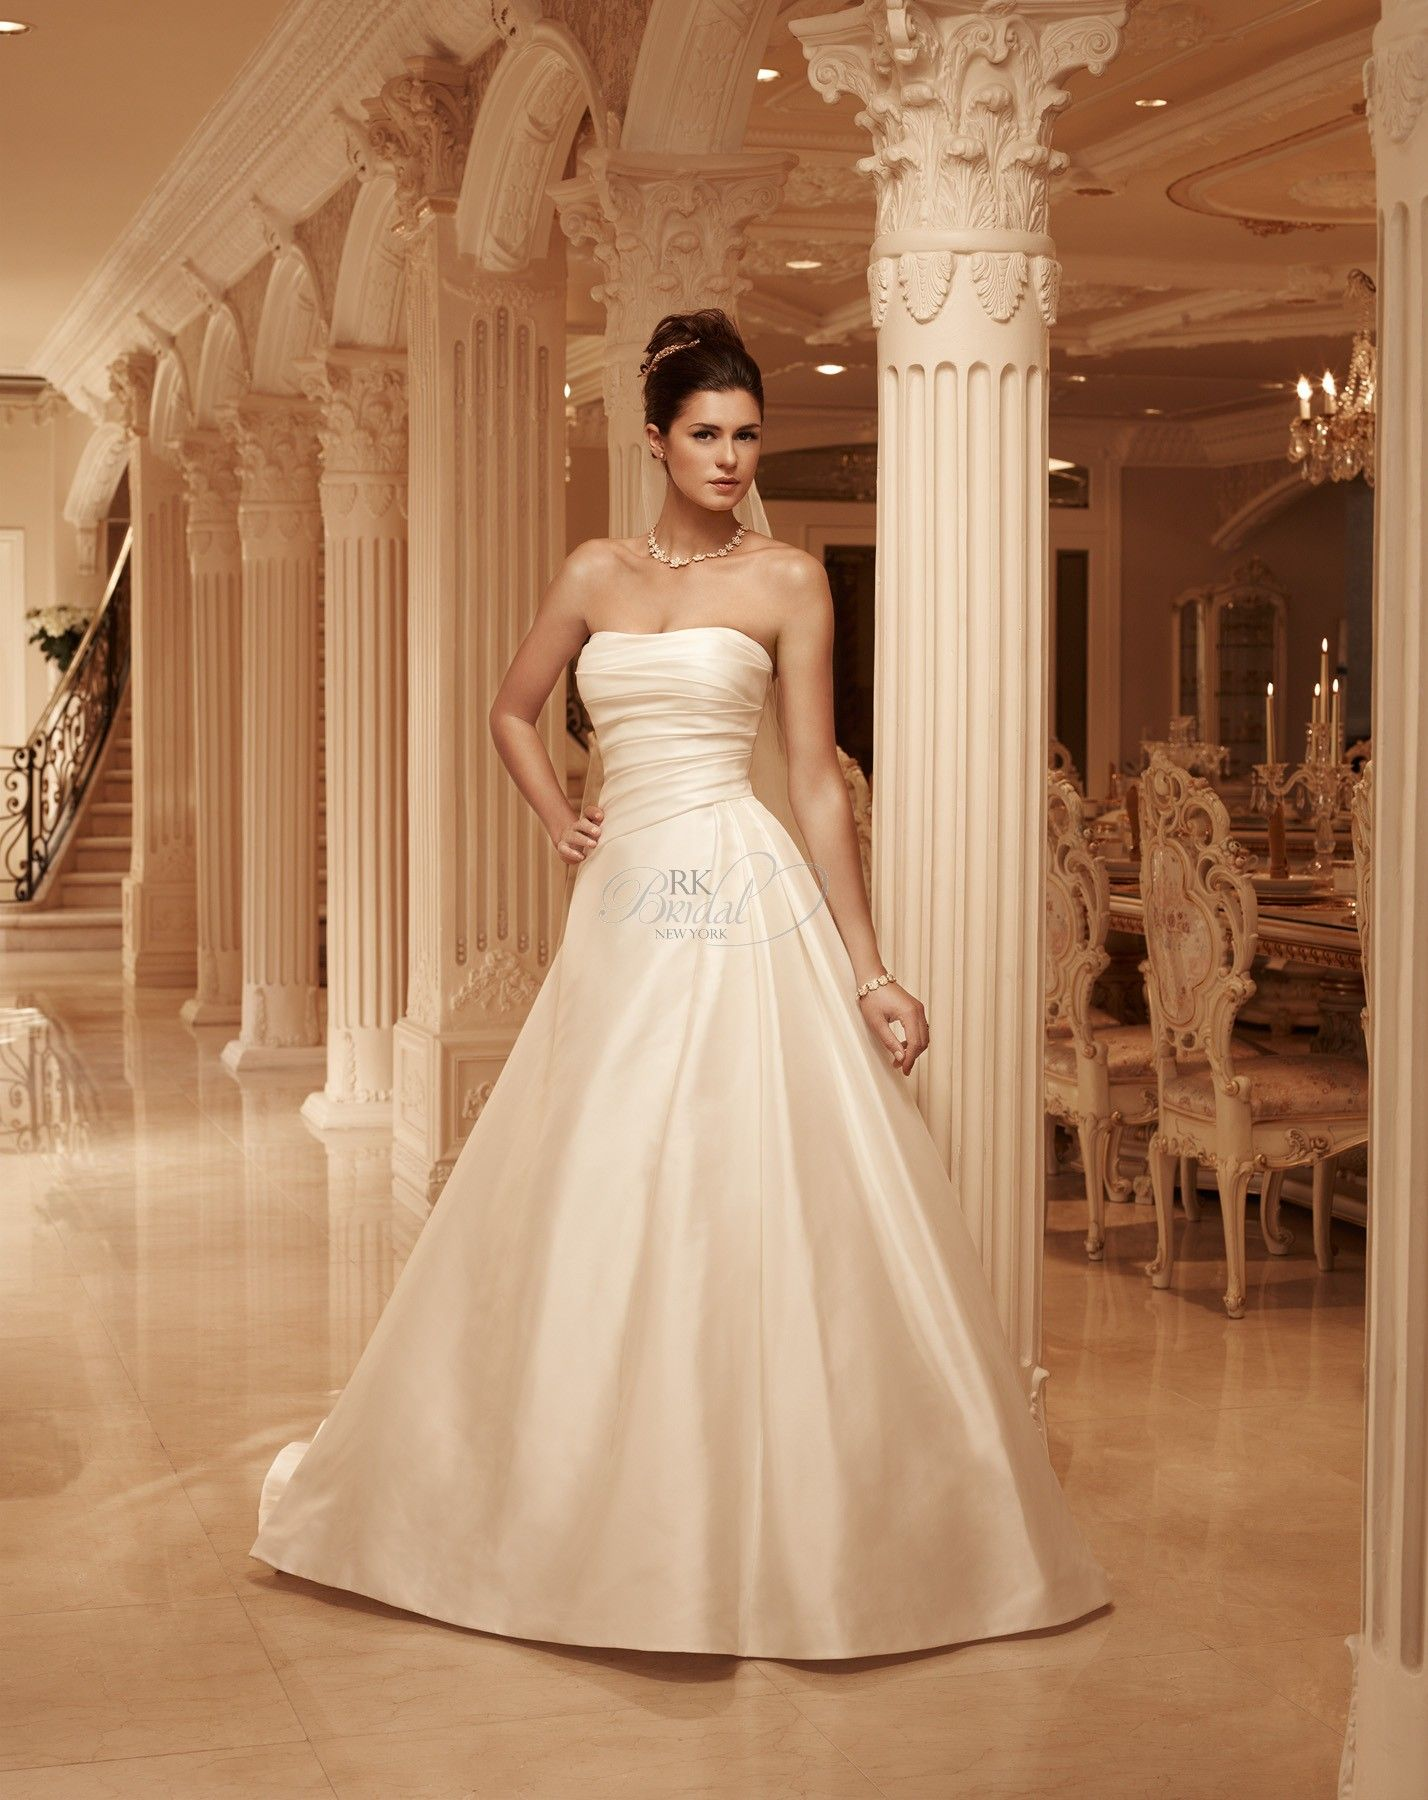 Disney wedding dresses jasmine  Casablanca Bridal Spring   Style   IdeasD  Pinterest